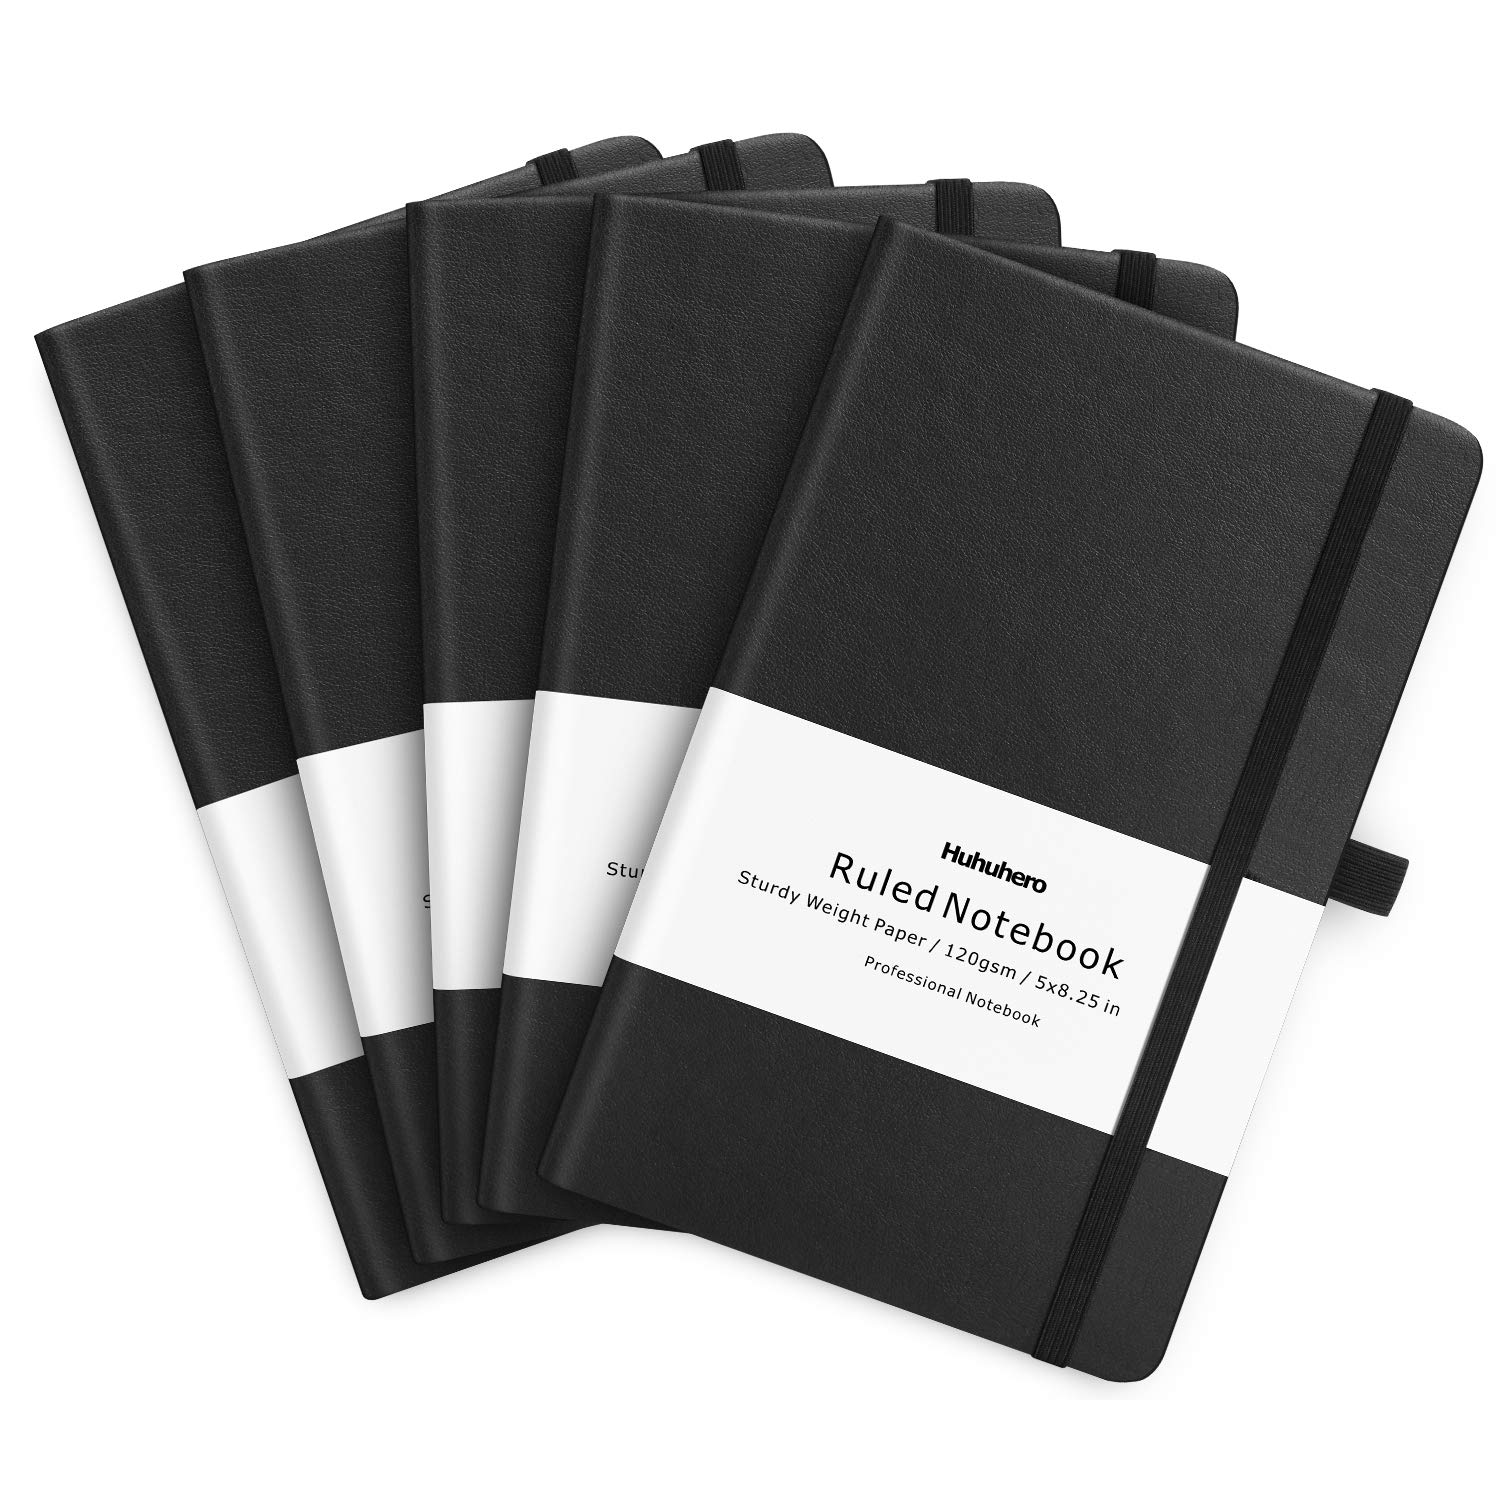 Huhuhero 5 Pack Notebooks Journals, Classic Ruled Notebook, Premium Thick Paper Lined Journal, Black Hardcover Notebook for Office Home School Business Writing Note Taking Journaling, 5''×8.3''